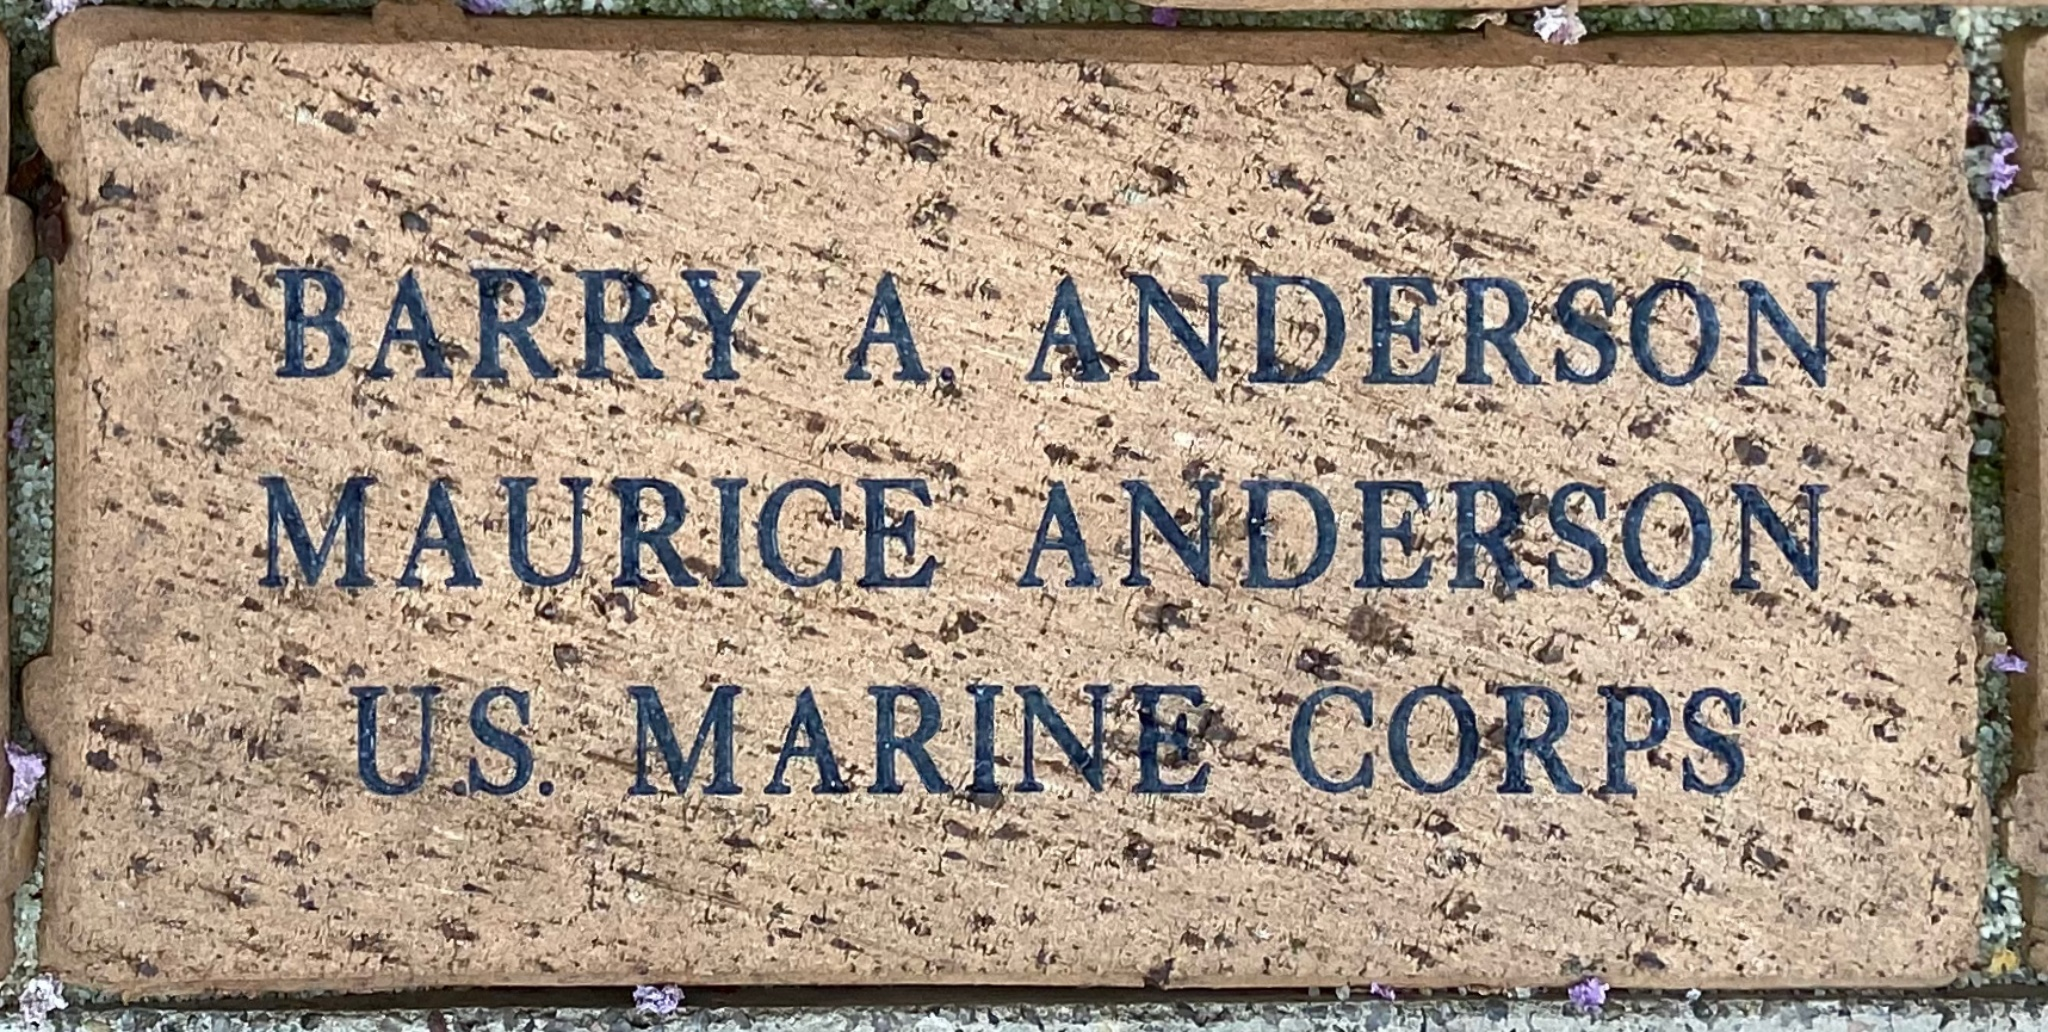 BARRY A. ANDERSON MAURICE ANDERSON U.S. MARINE CORPS